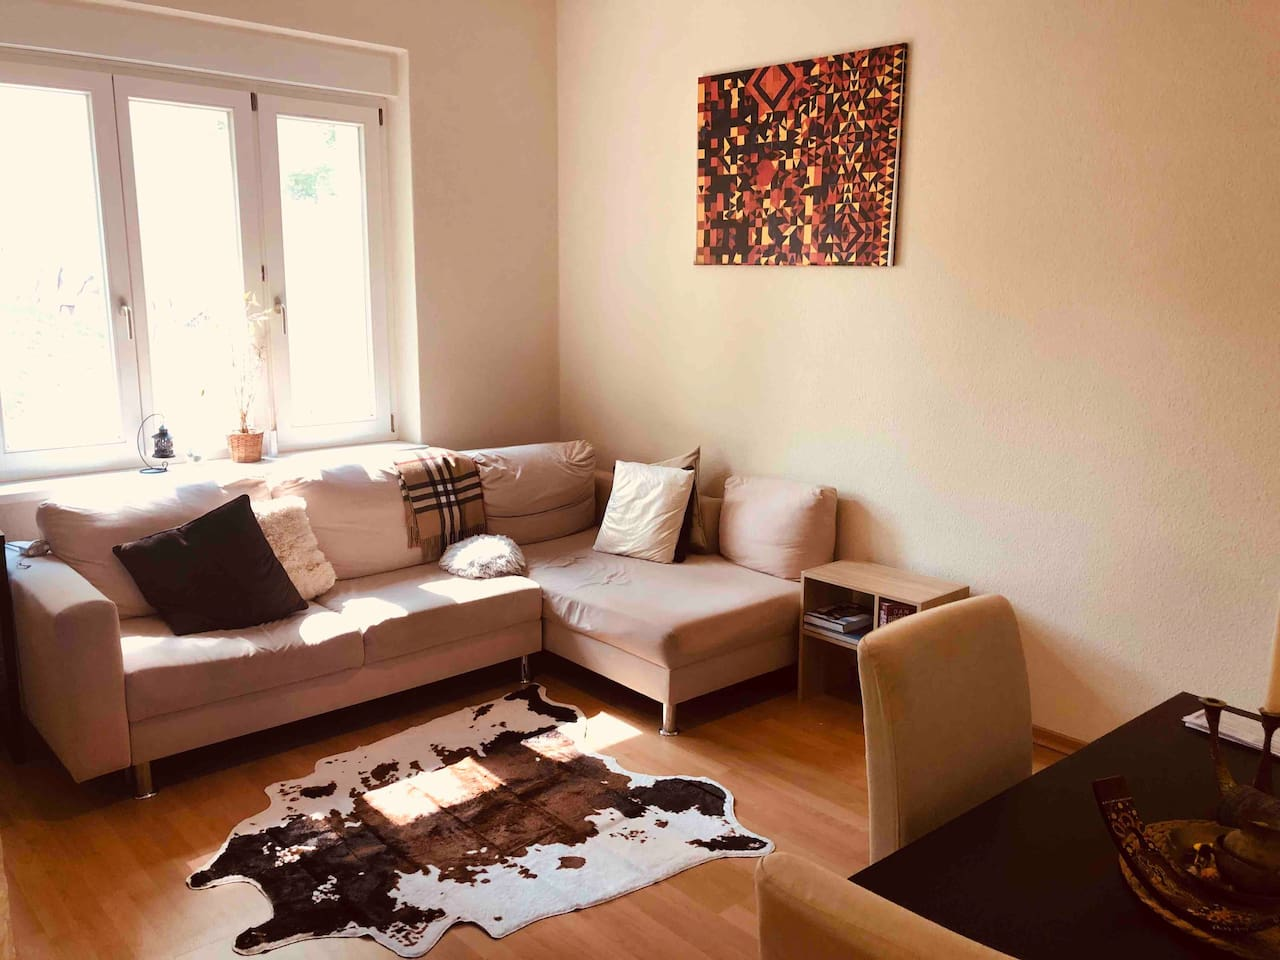 Living room with a foldable designer sofa bed that sleeps 2 people comfortably